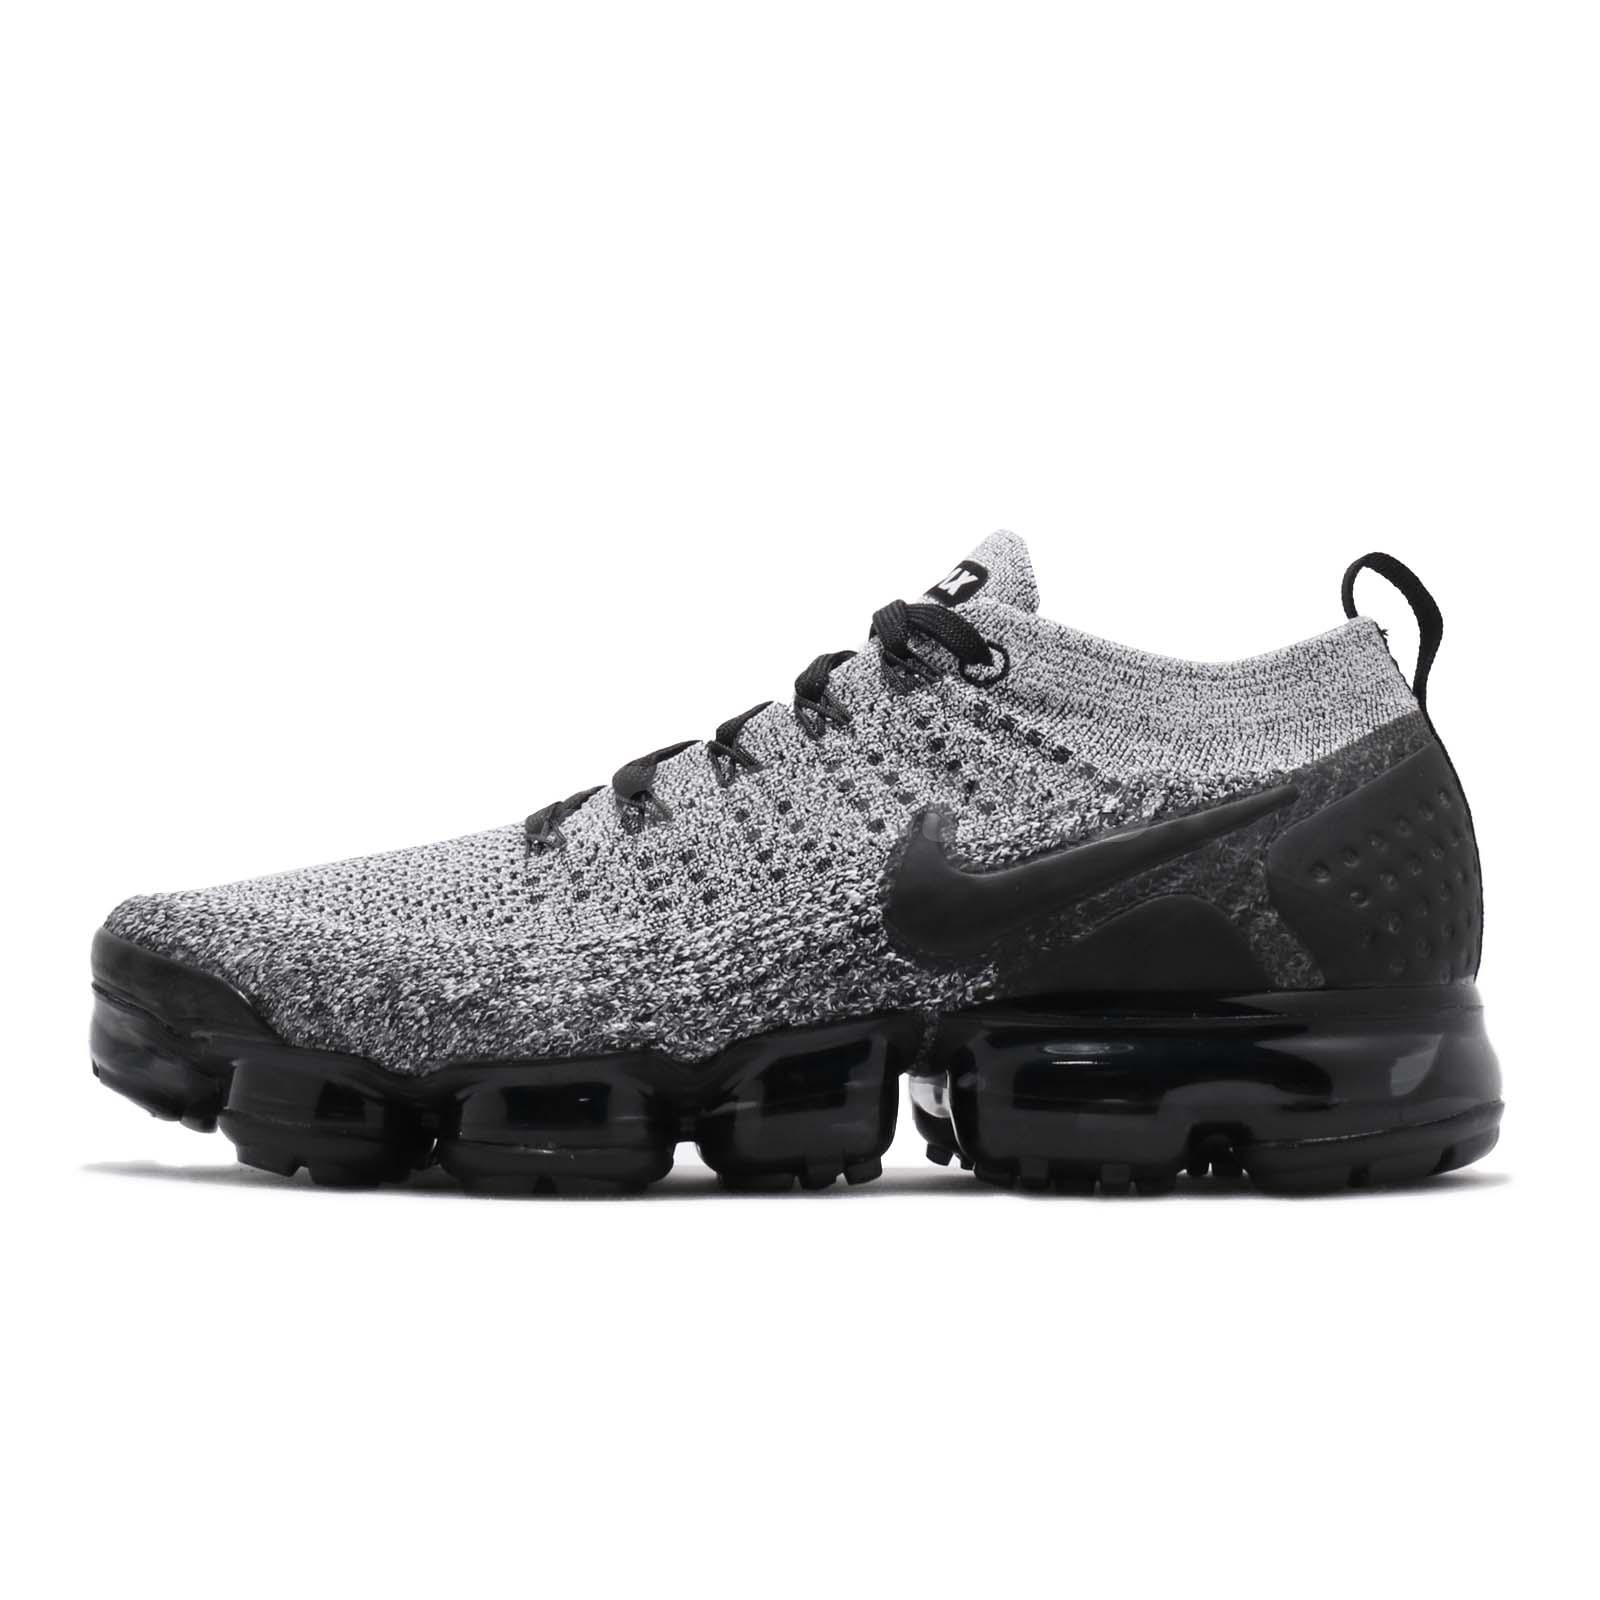 huge discount a04dc c956f Nike Air Vapormax Flyknit 2 White Black Men Running Shoes Sneakers 942842 -107